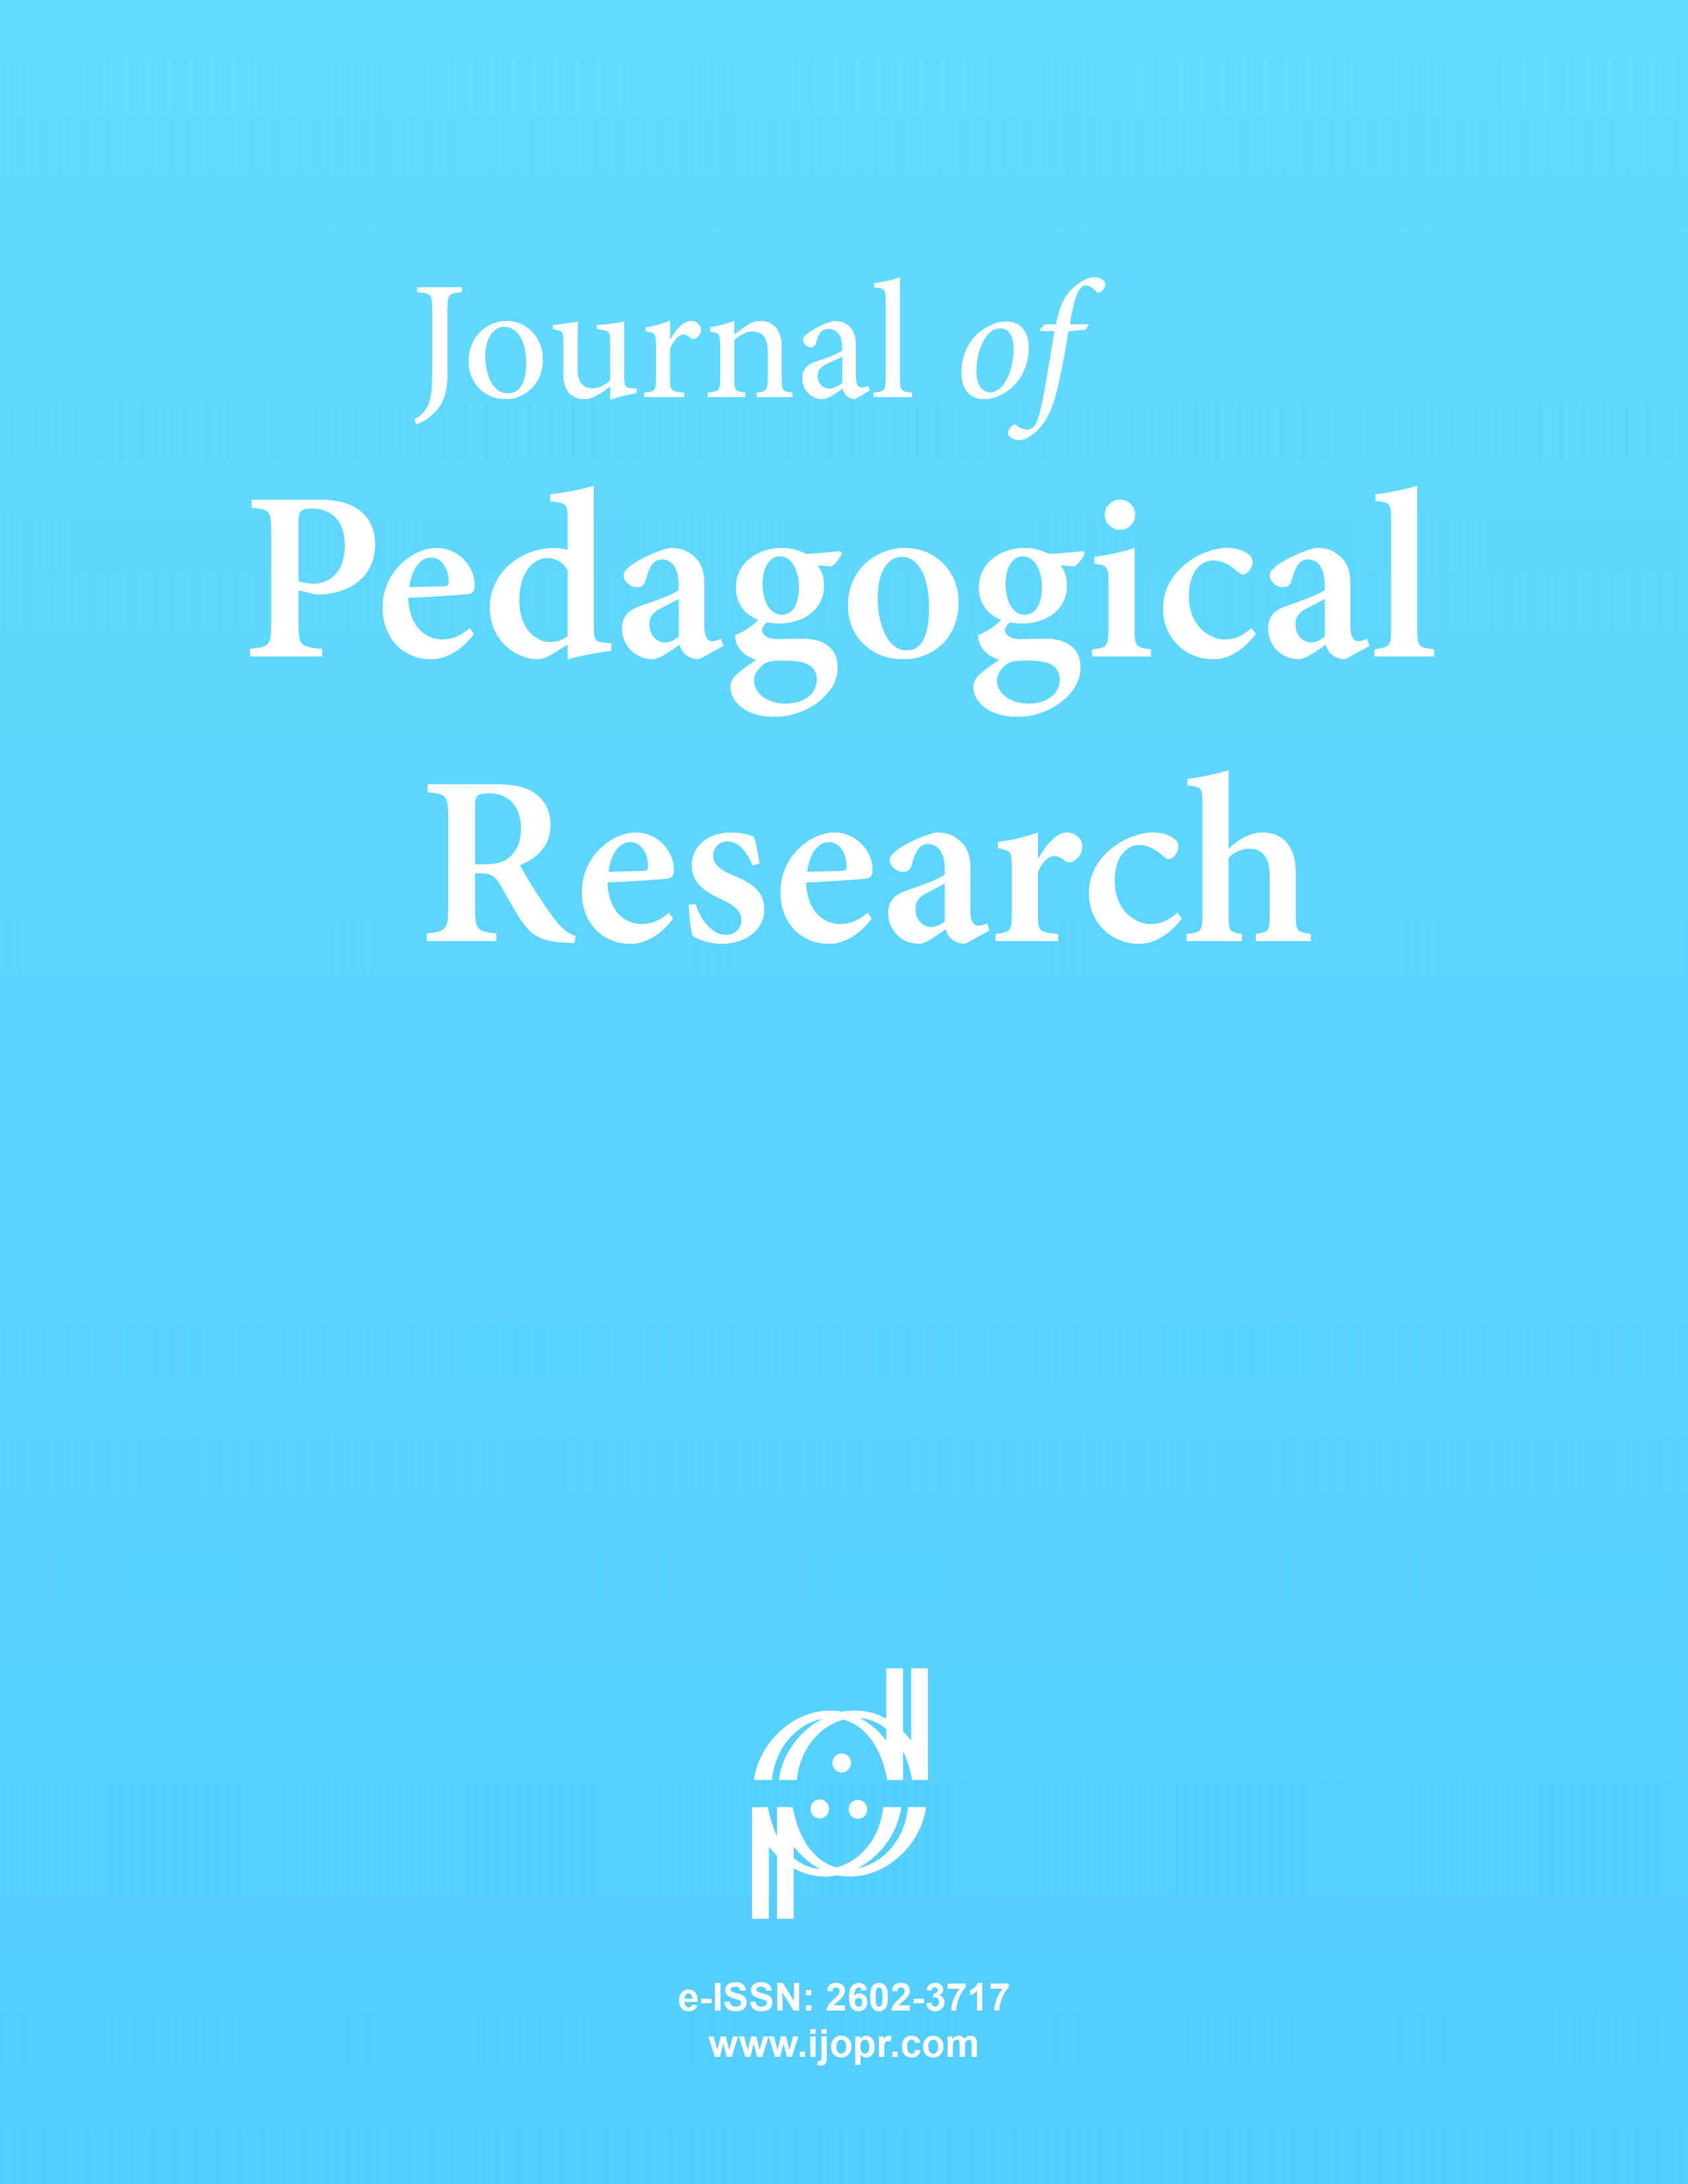 Journal of Pedagogical Research